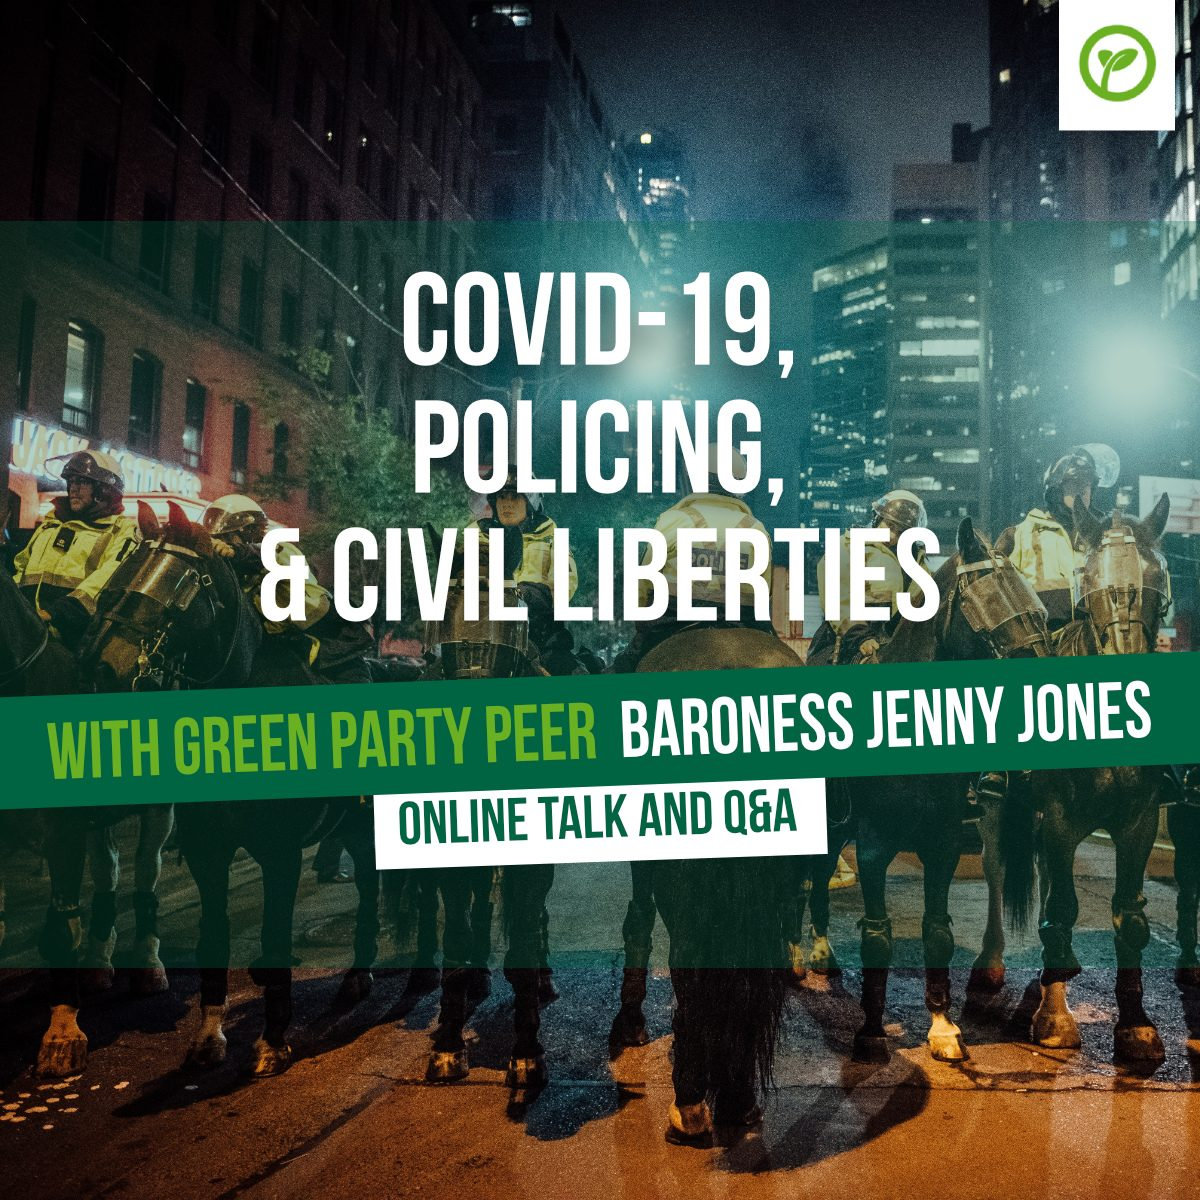 Covid-19, policing, & civil liberities. With Green Party peer Baroness Jenny Jones. Online Talk and Q&A.